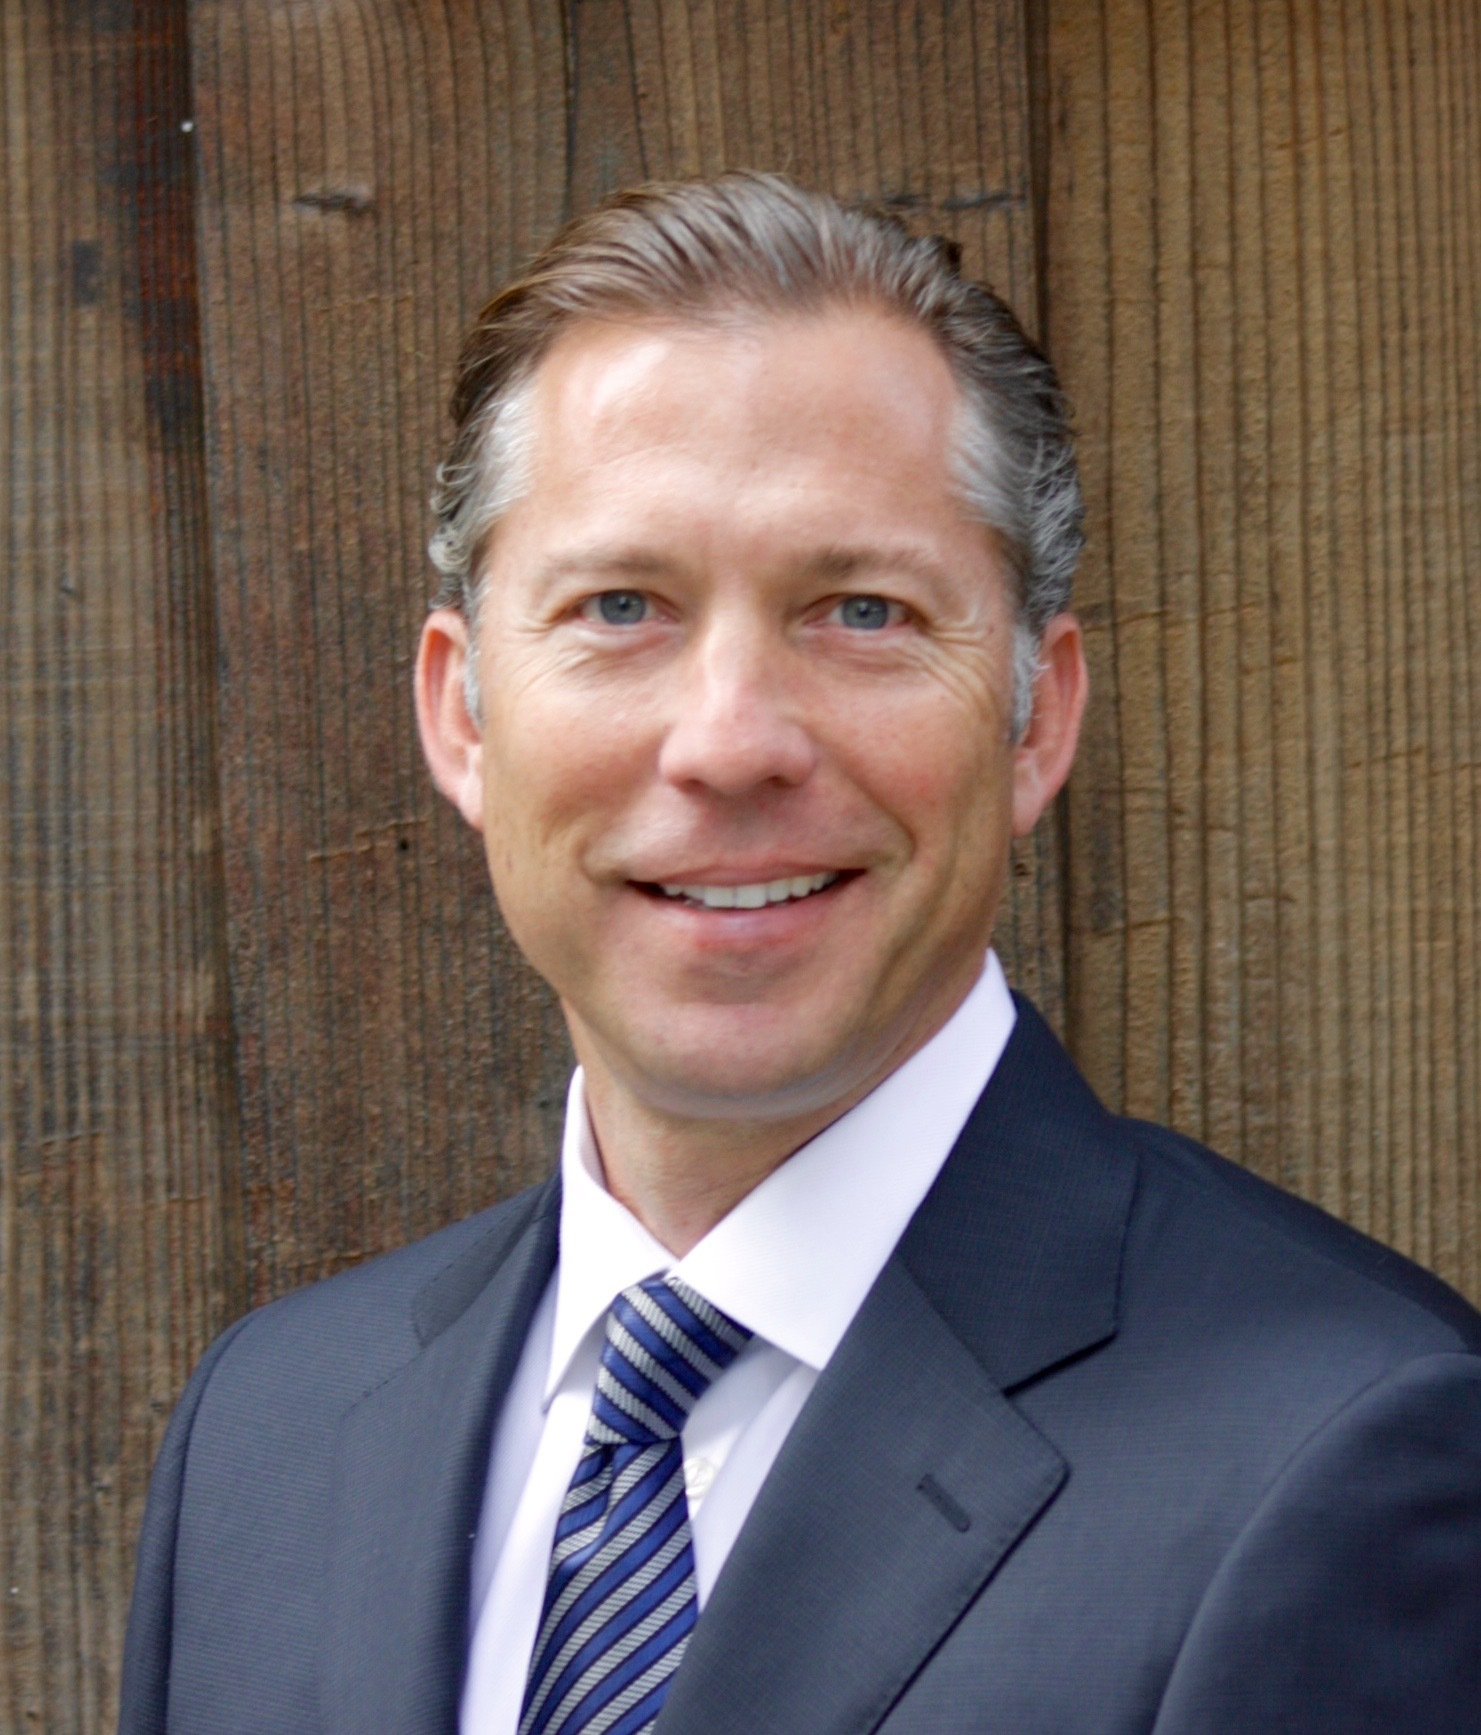 Will Righeimer has been named CEO at Lindora, the largest medically supervised weight loss, wellness and consumer products company in the United States. (Photo: Business Wire)